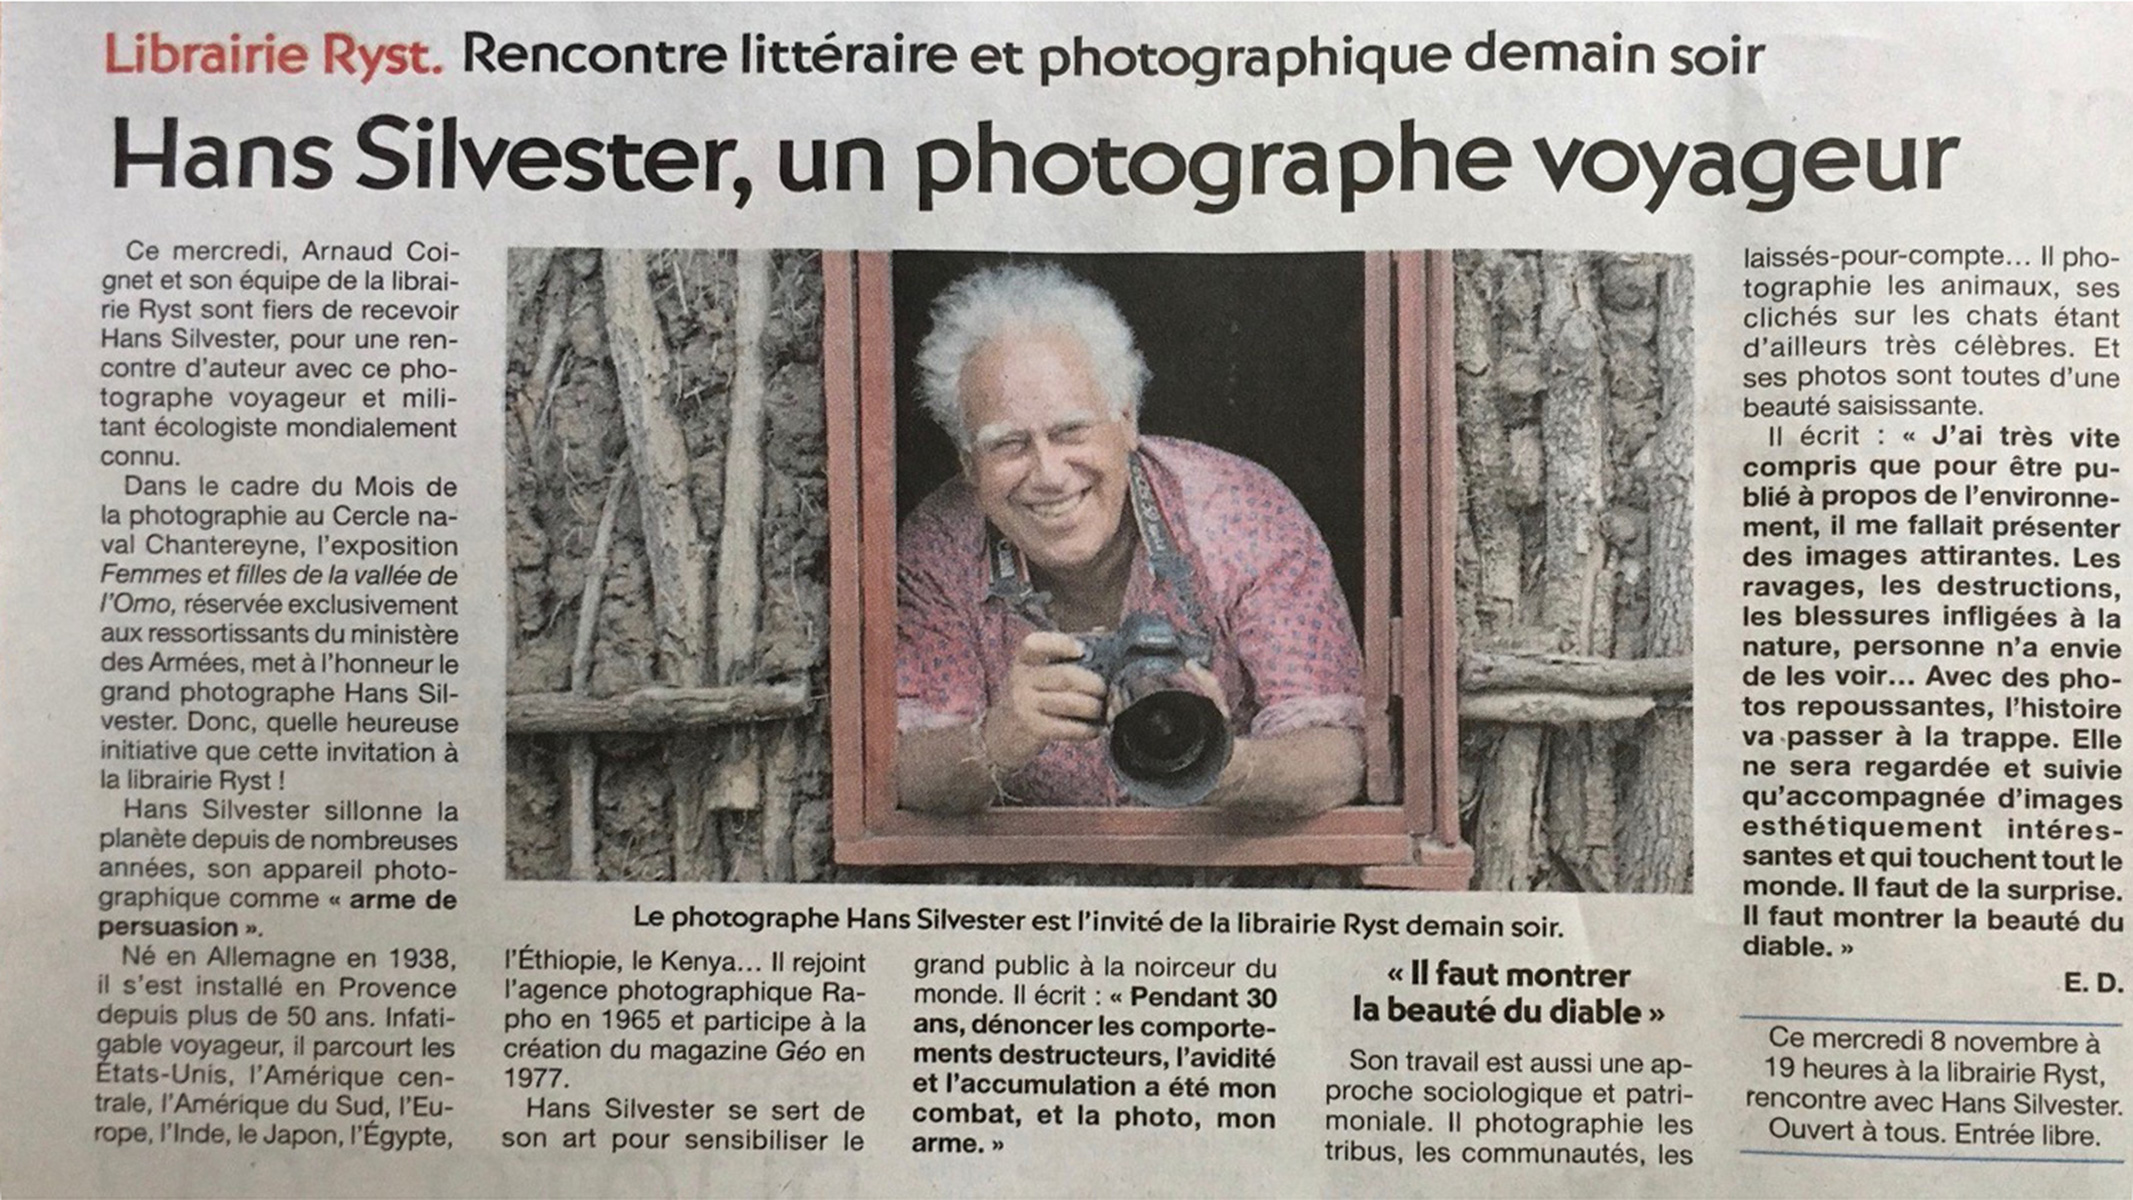 MOIS DE LA PHOTOGRAPHIE, MONTH OF PHOTOGRAPHY, DES MONATS DER FOTOGRAFIE, МЕСЯЦ ФОТОГРАФИИ